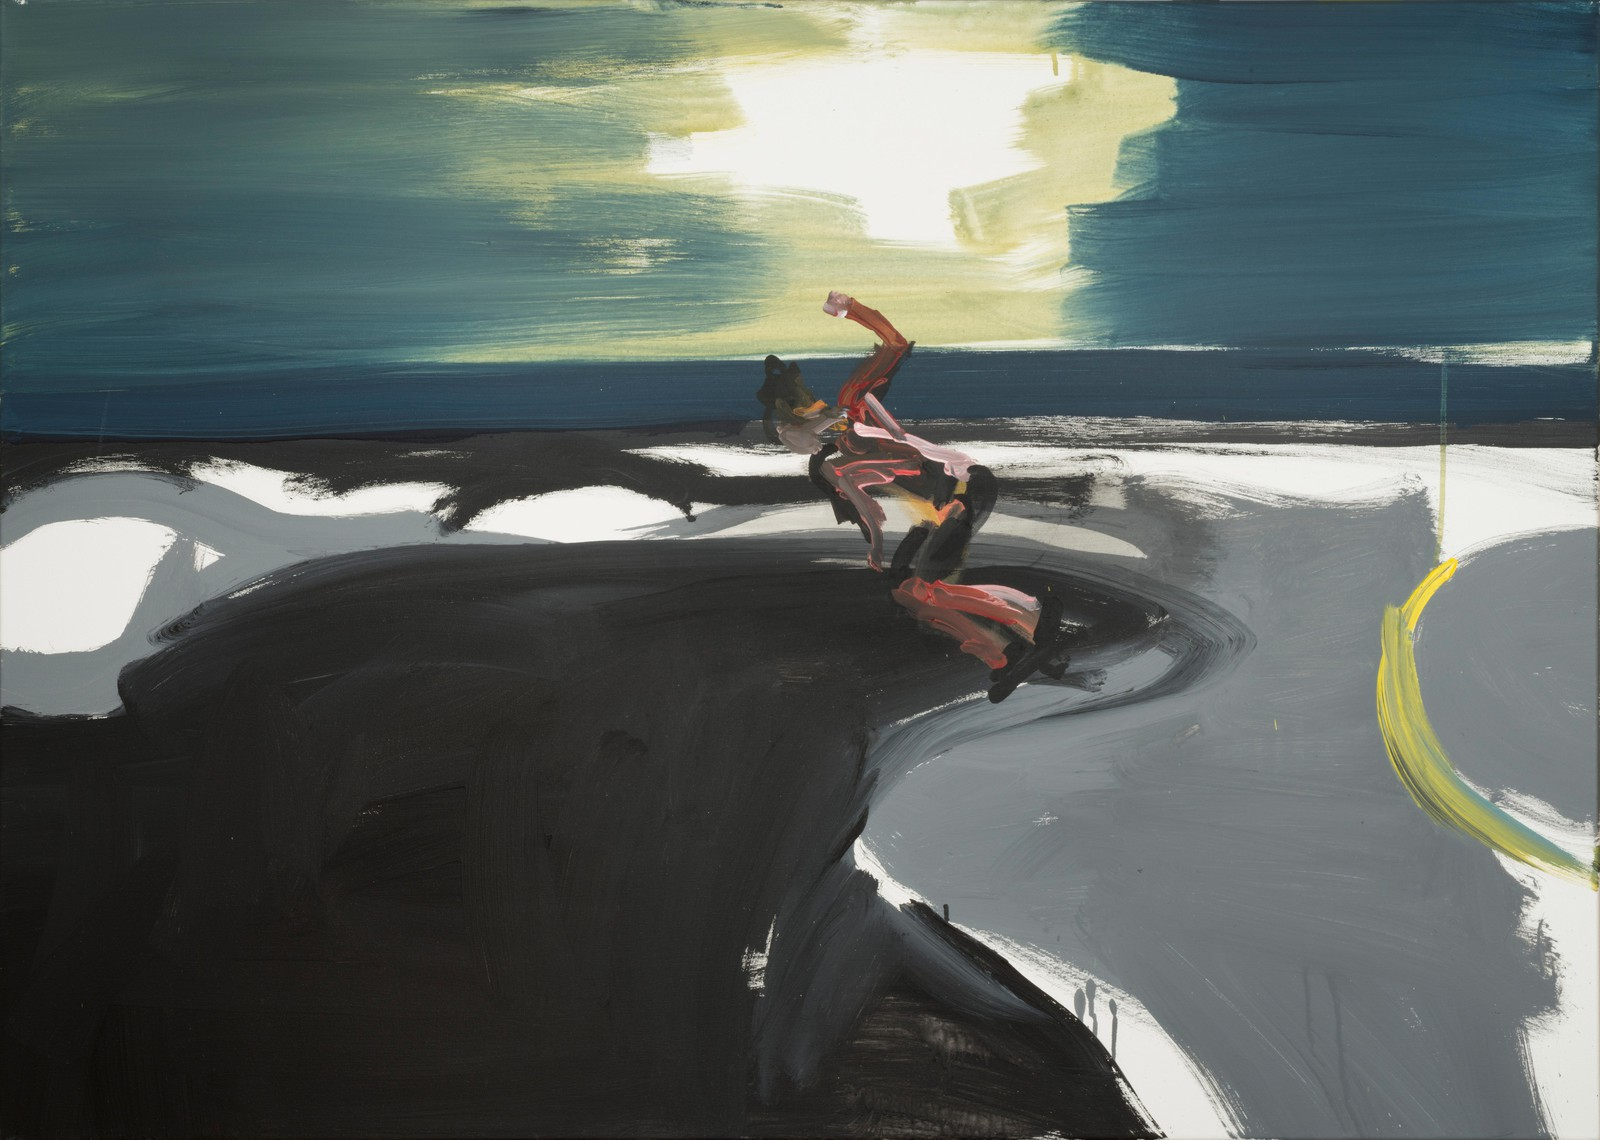 Rainer Fetting, Skater (Venice Beach), 2016, acrylic on canvas, 100 x 140 cm